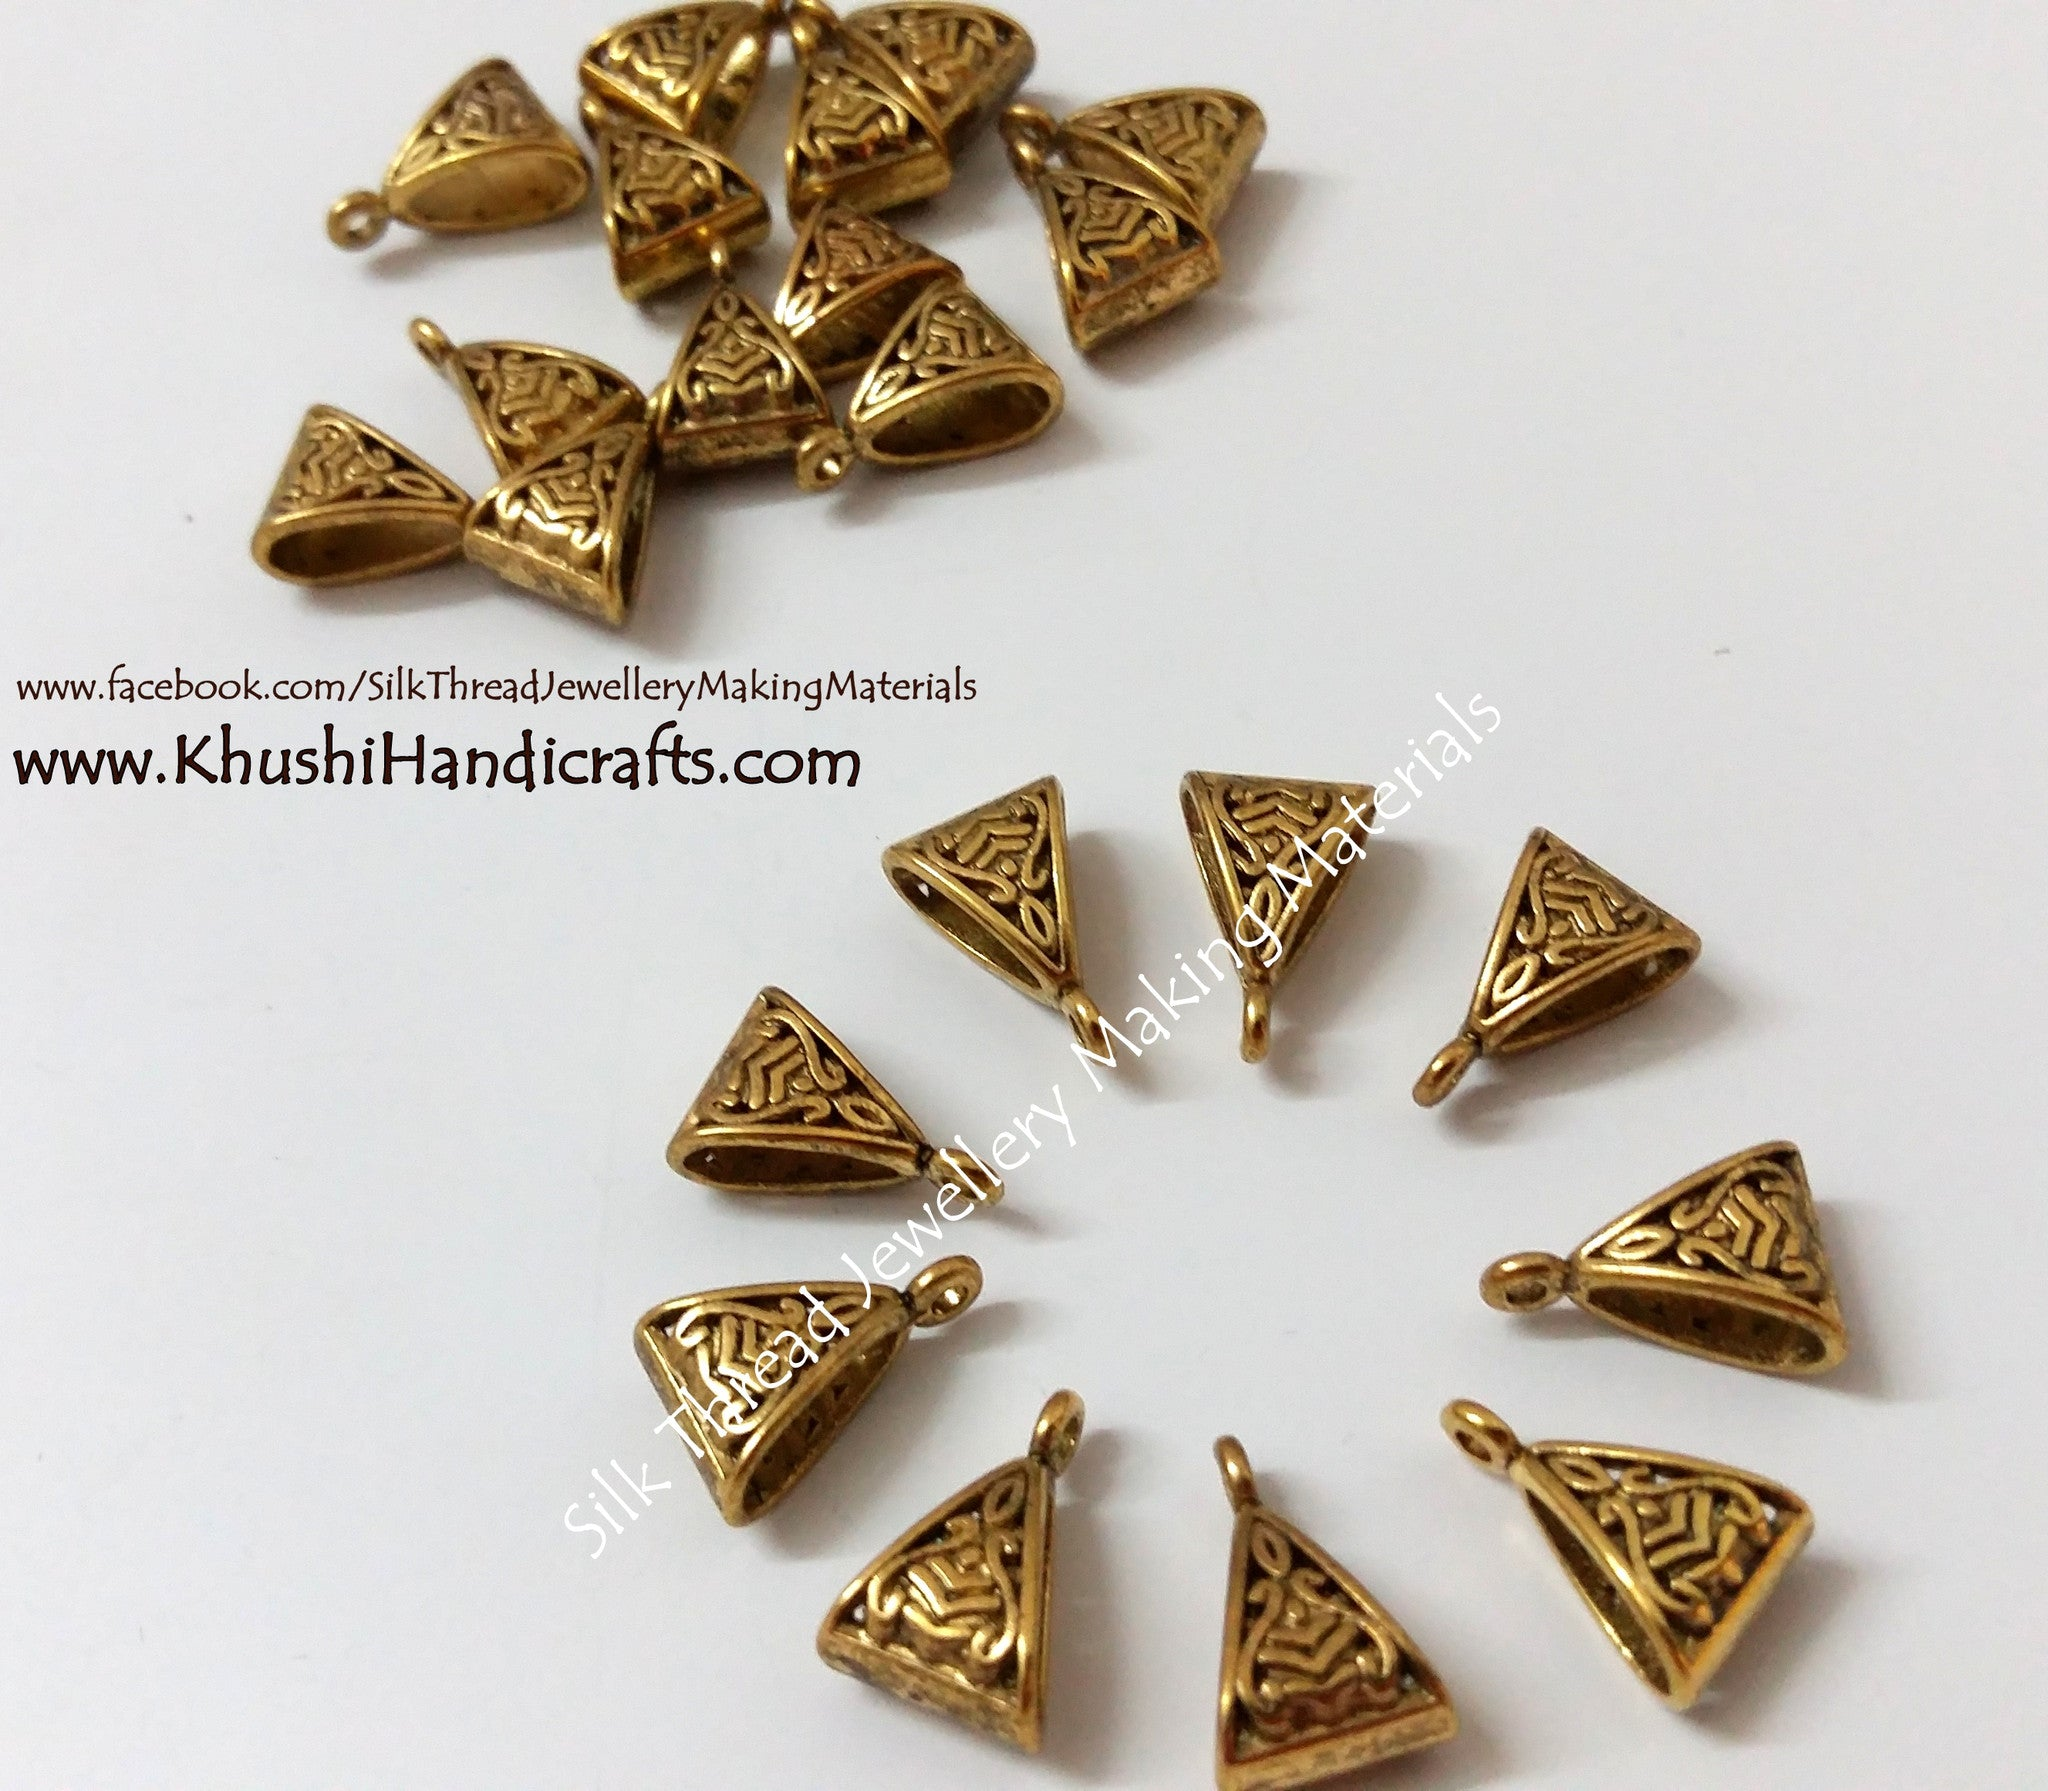 Bulk -High Quality Antique Gold Triangular Bails 100 pieces - Khushi Handmade Jewellery